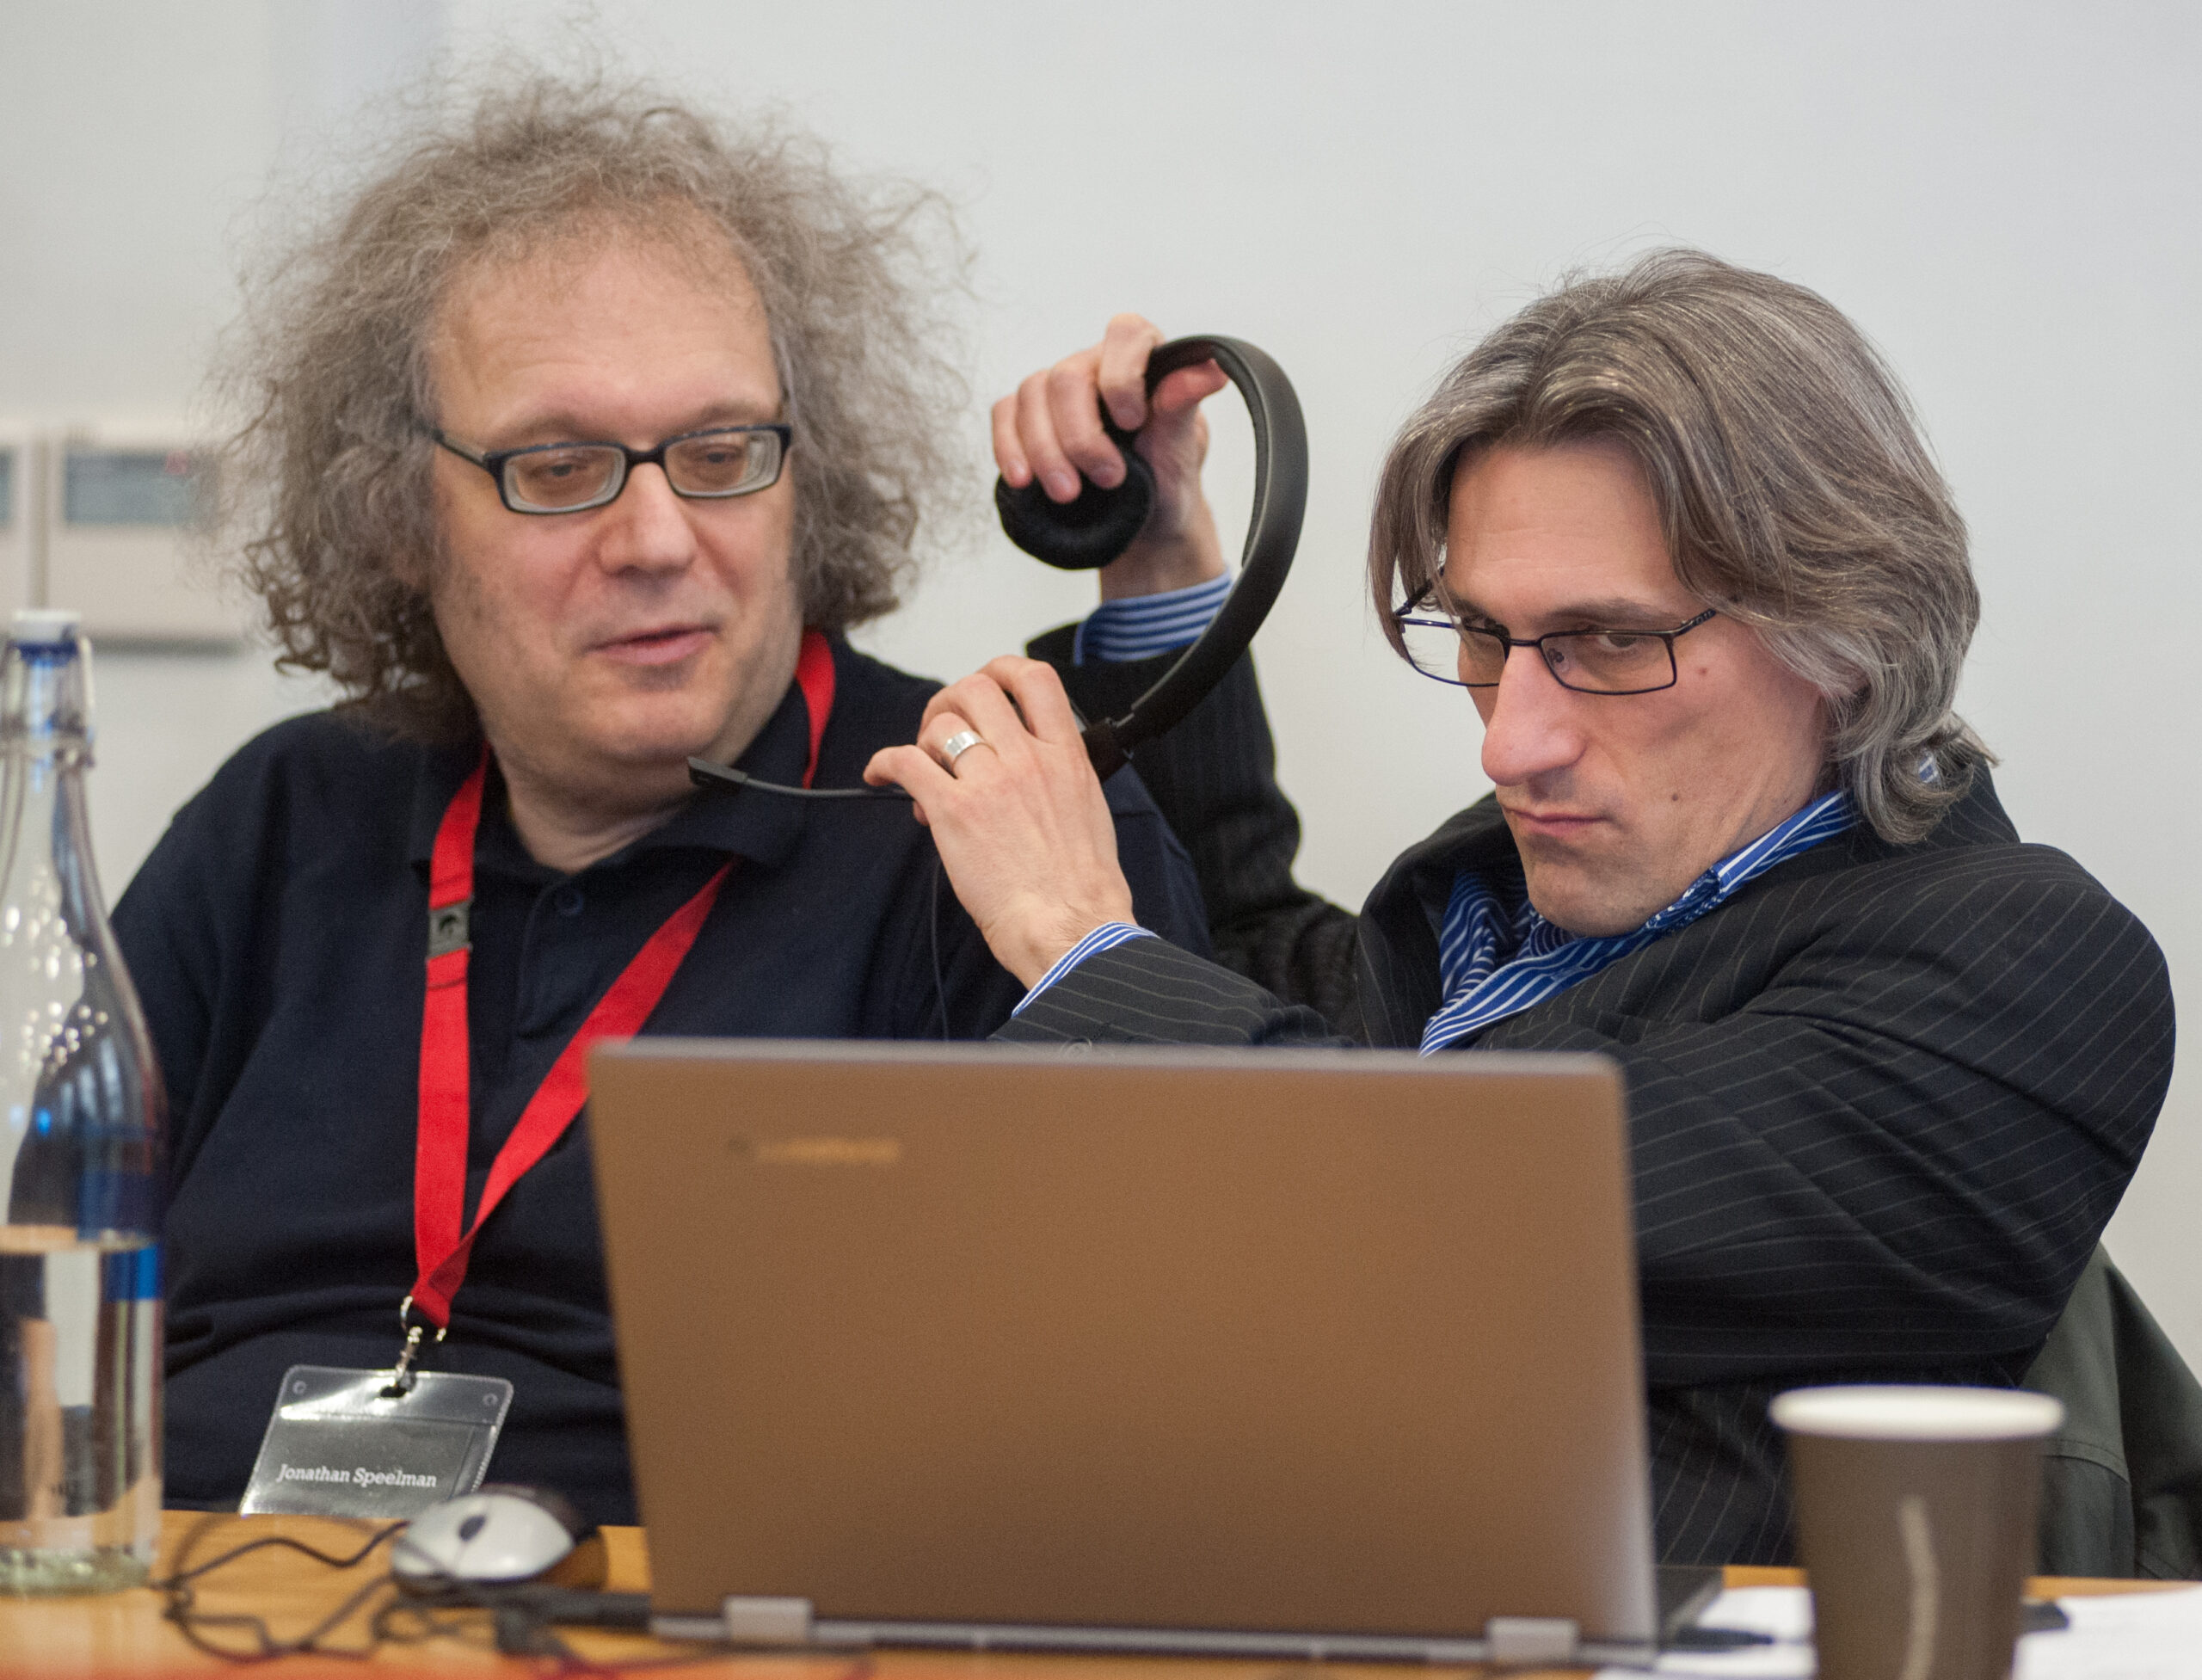 Jonathan Speelman and Daniel King share headphones at the 2013 FIDE Candidates event in London